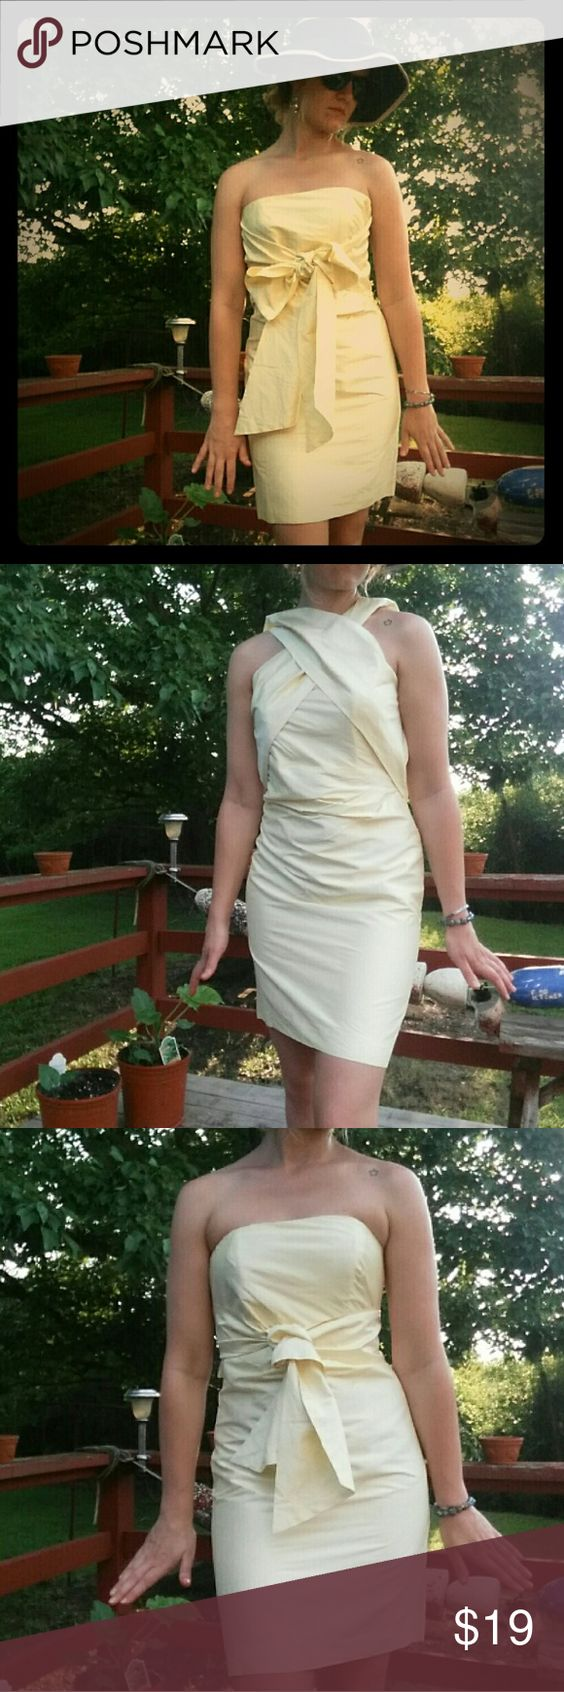 """Strapless yellow semi-formal with unique sash Semi-formal yellow 100% silk dress with unusual attached sash that can be styled several different ways. ***Please Note*** this dress has been machine washed, dry-cleaned, and pressed all in attempt to remove a very light lipstick stain under the sash... so it is washed and pressed silk and looks like it. Price is """"as is"""". Coren Moore Dresses Strapless"""